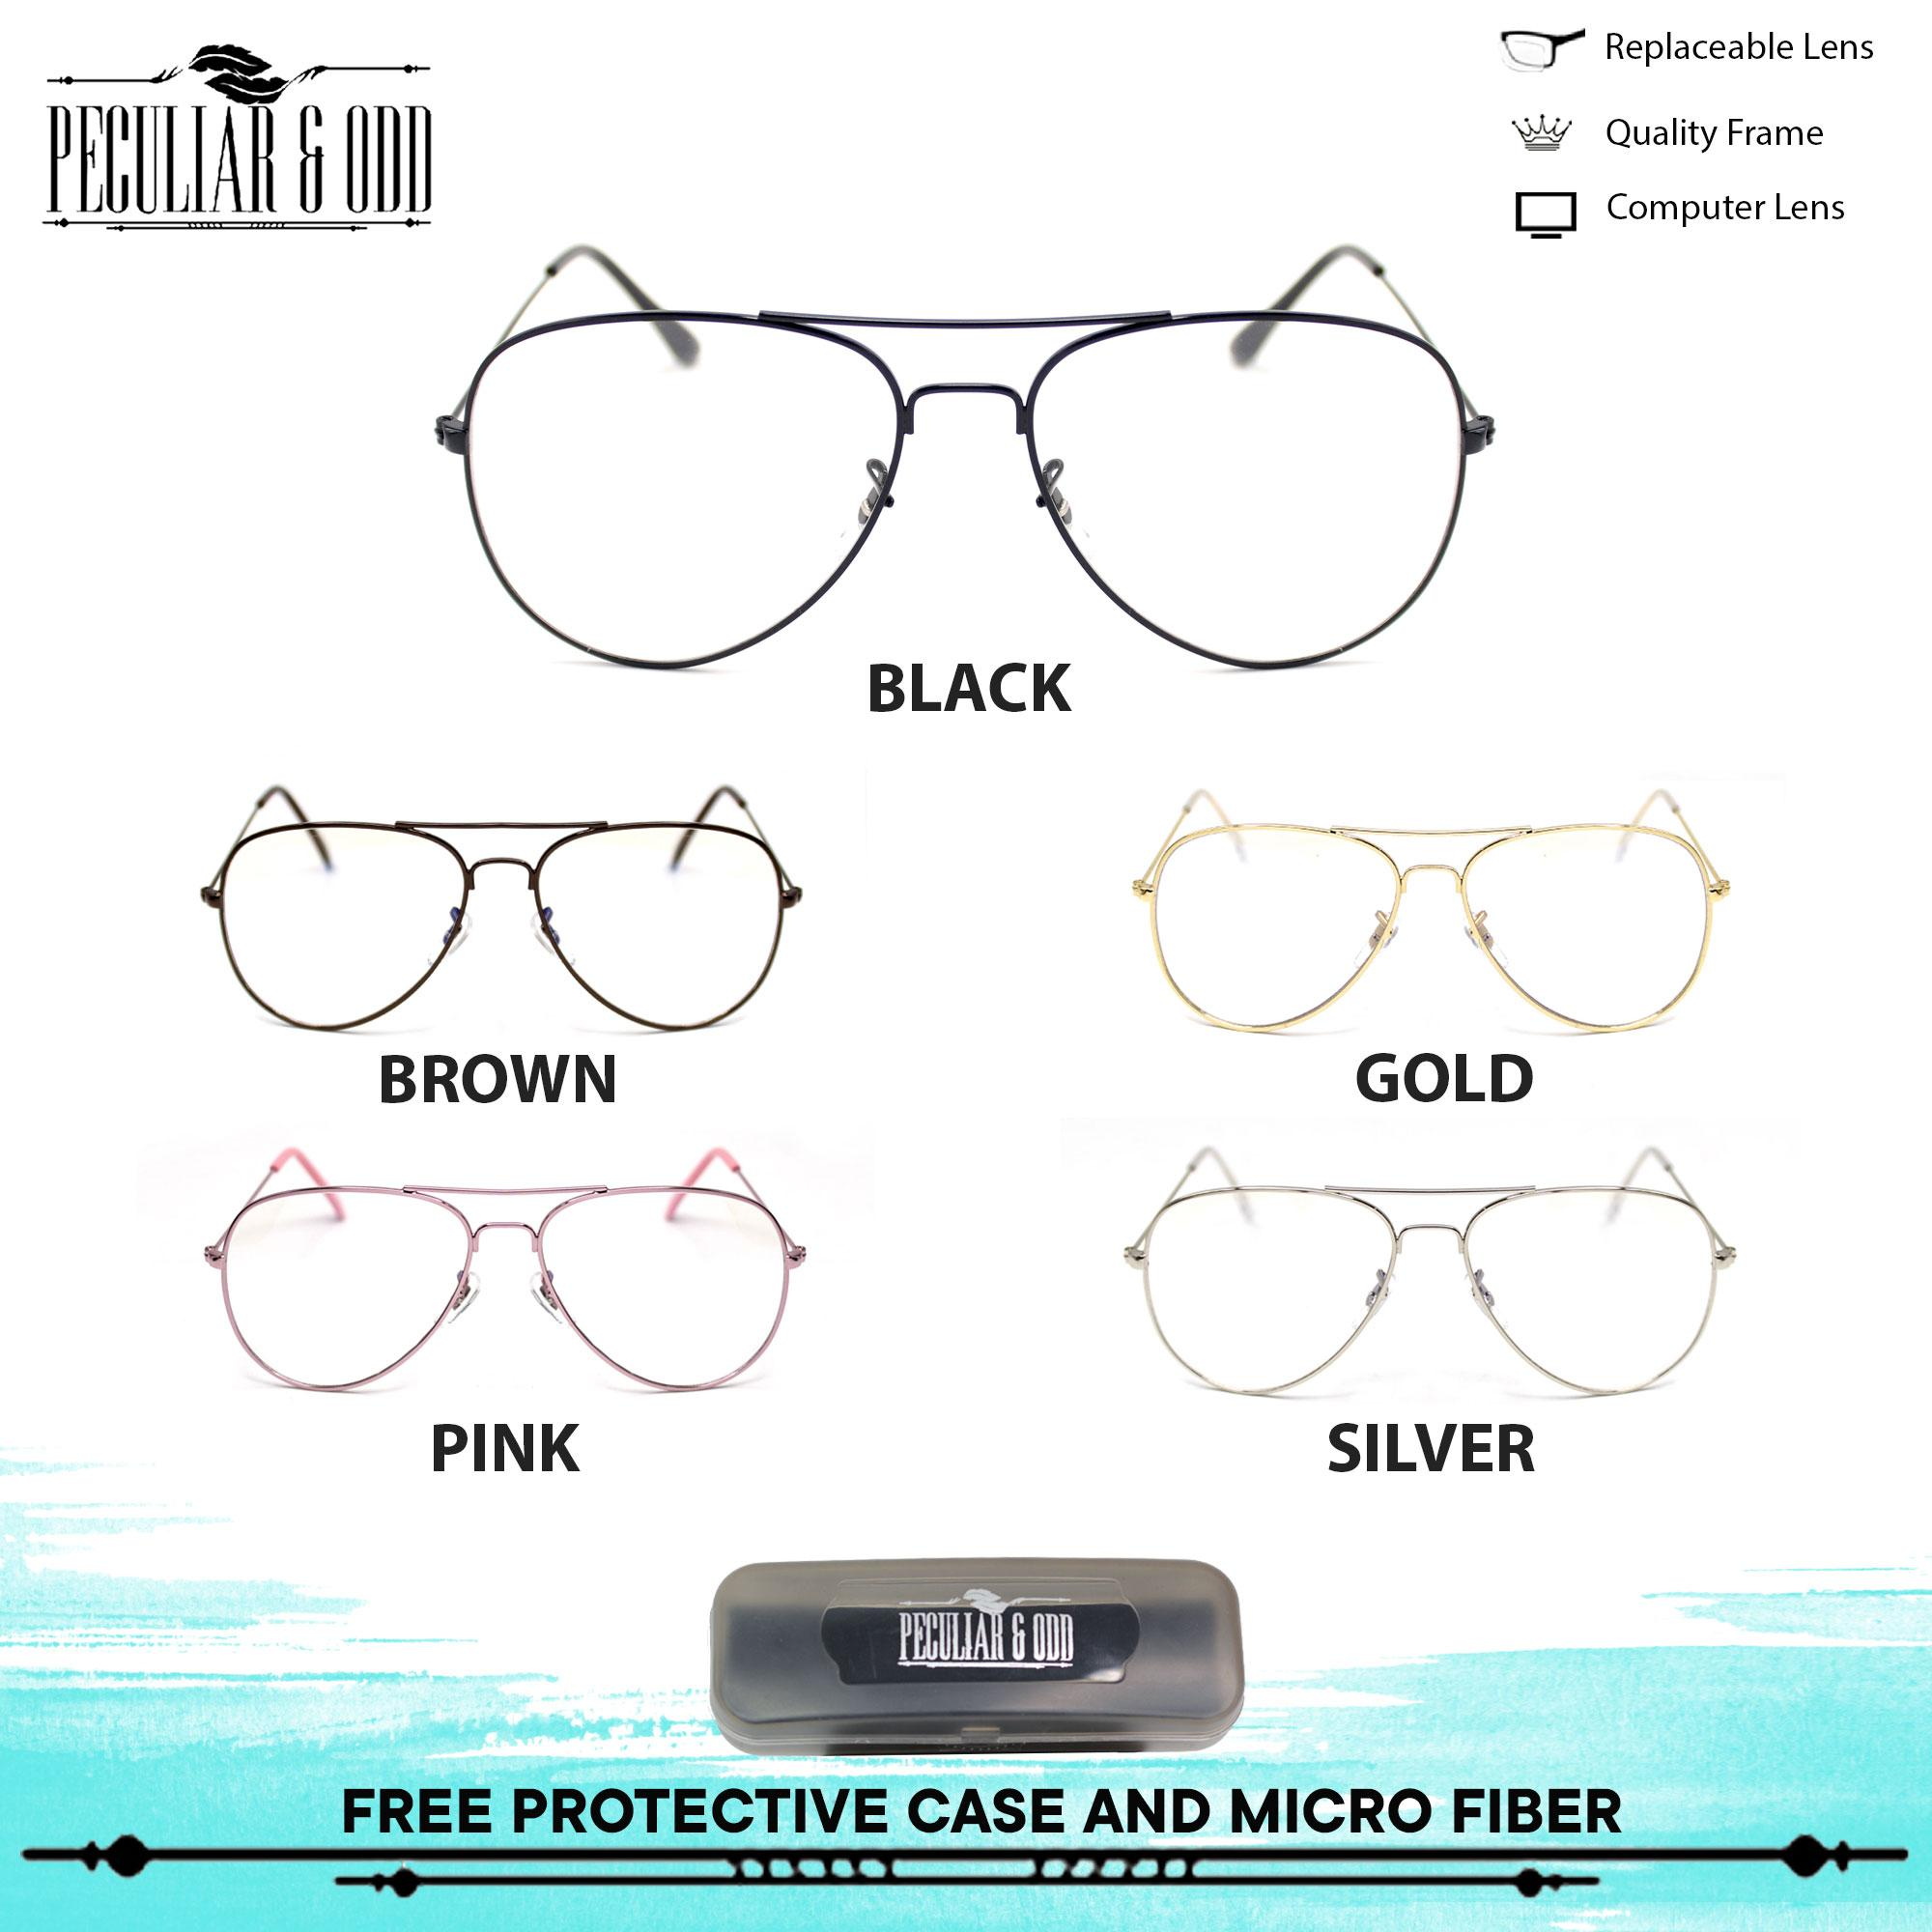 aceb3cbc88 Peculiar Aviator Pilot 3027 Antiradiation Lenses in Thin Metal Frame  Lightweight Replaceable Optical Lens Unisex Eyewear